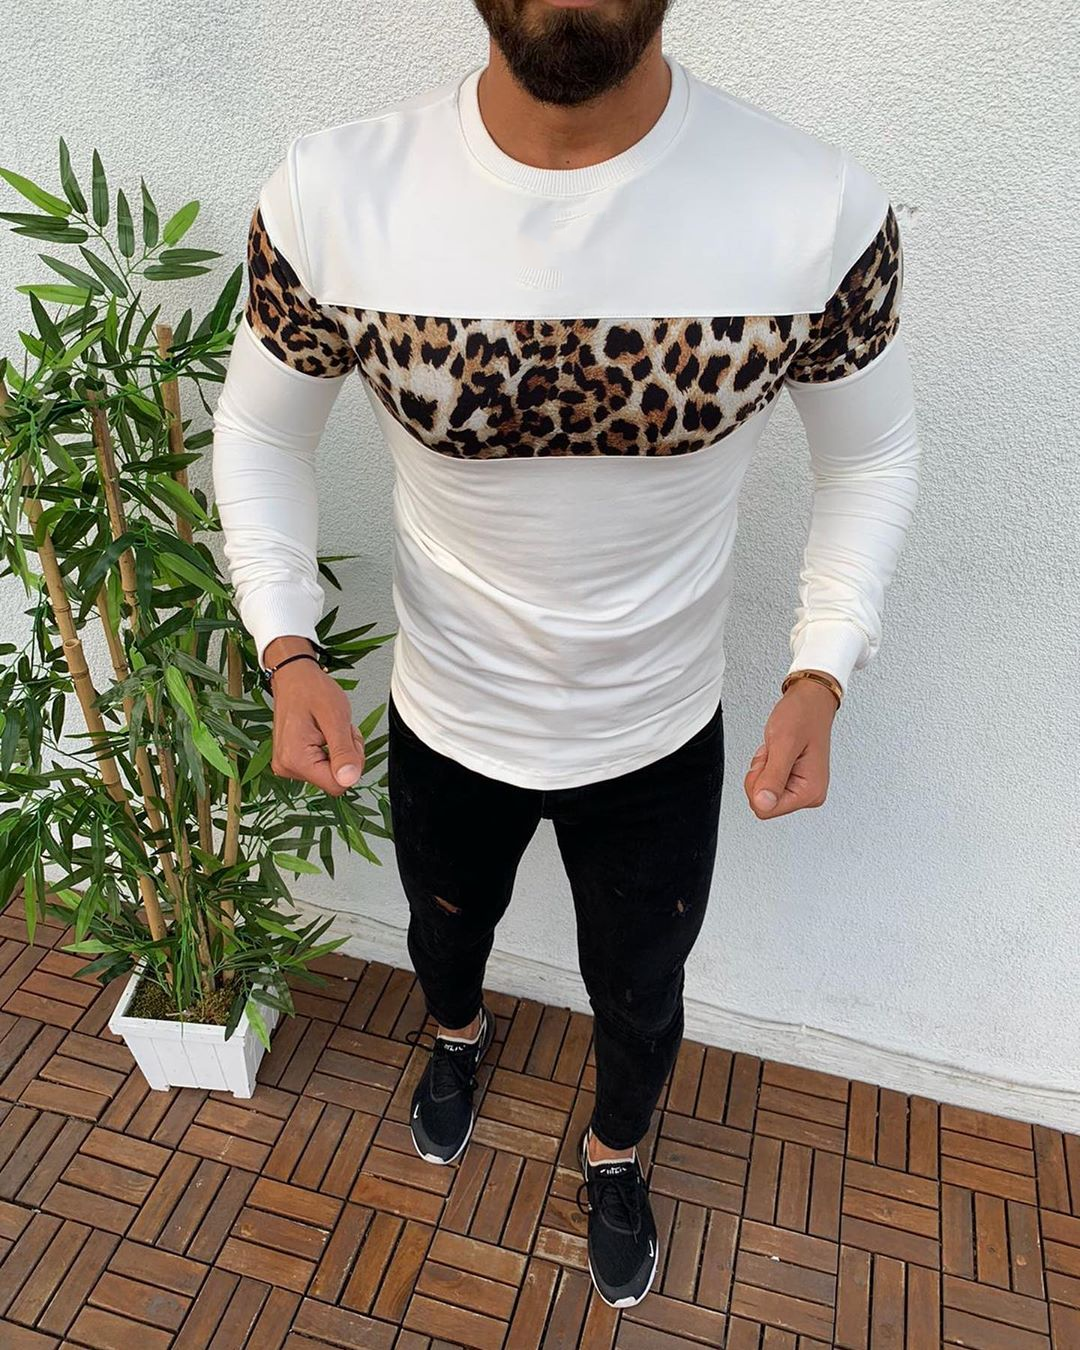 Men Autumn Winter Warm Pullover Leopard Sports Sweatshirt Long Sleeve Sweater Pullover